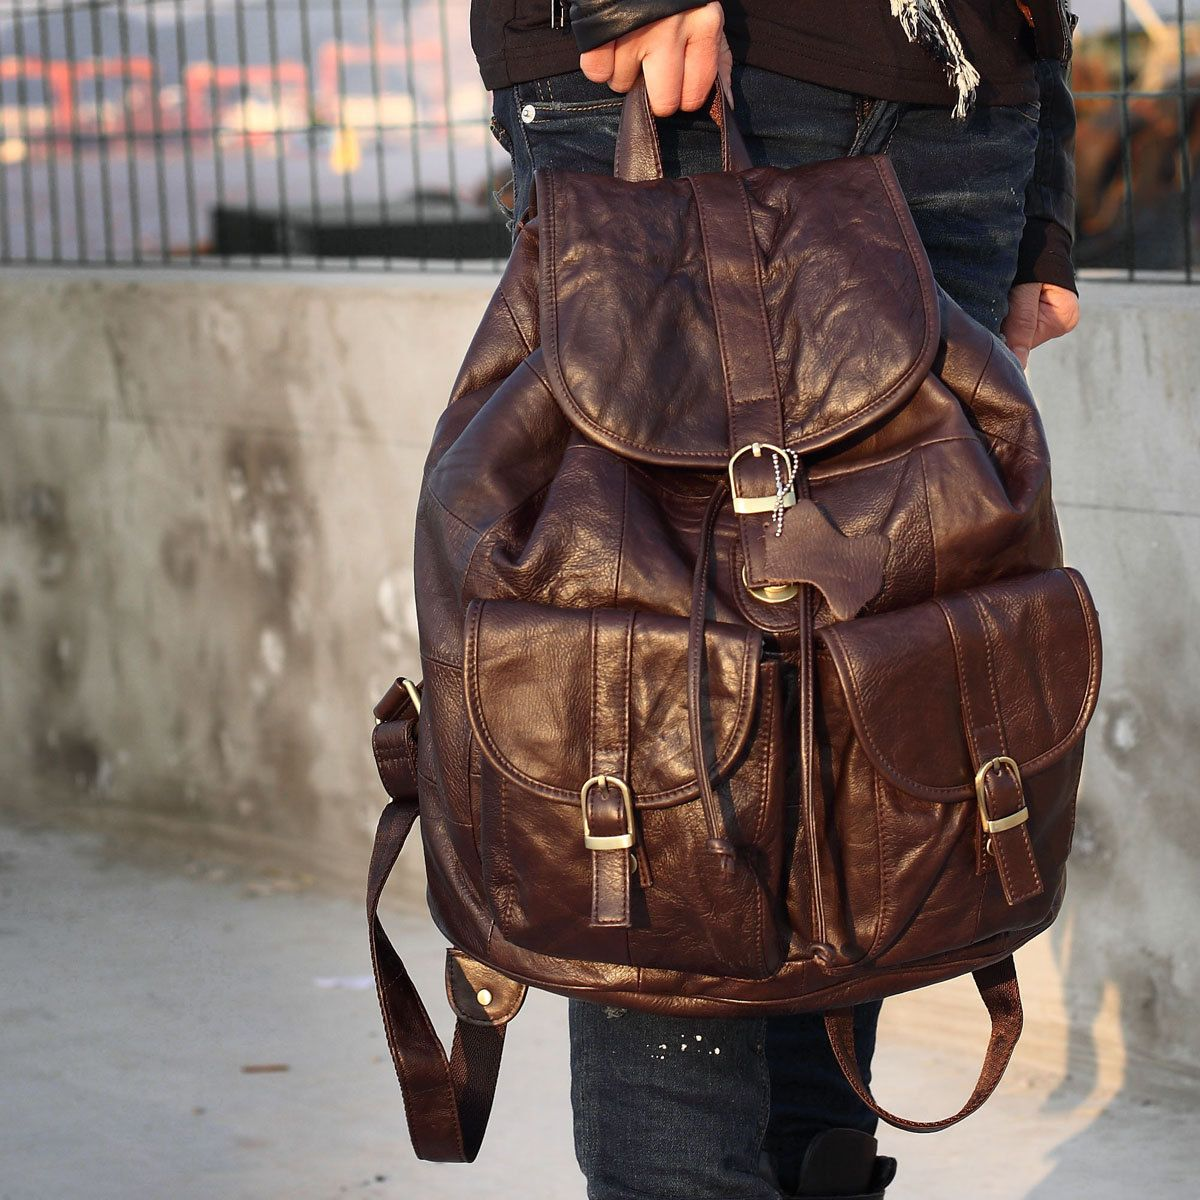 Large calf leather bag   women / man  Backpack  bag  by art1986, $220.00